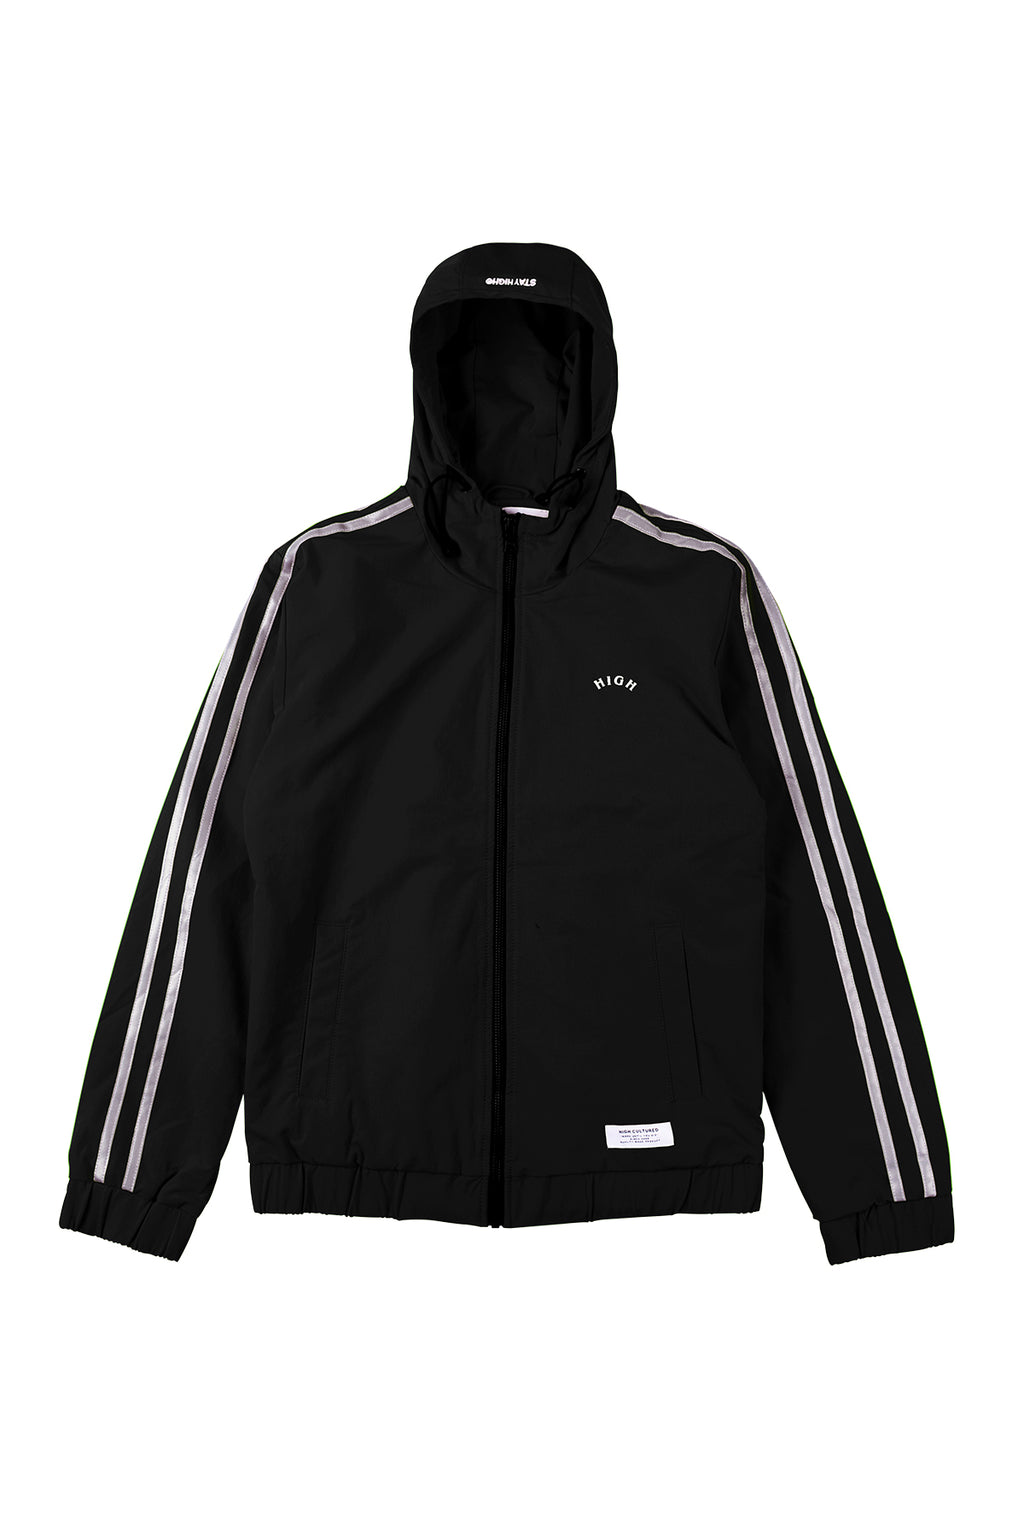 REFLECTIVE DOUBLE STRIPES HOODIE JACKET - 86